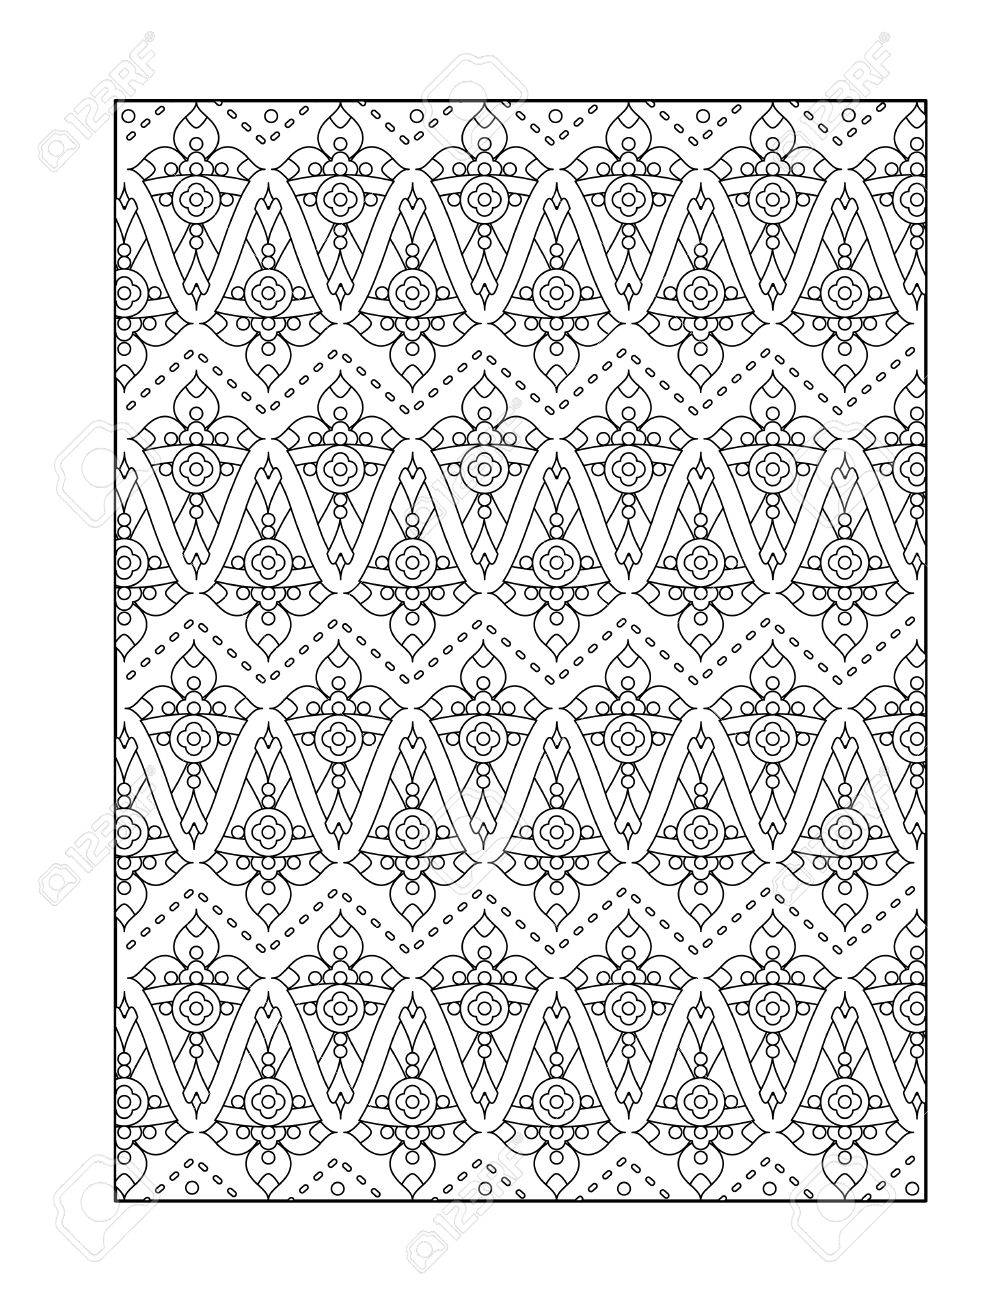 pattern coloring page for adults children ok too or monochrome